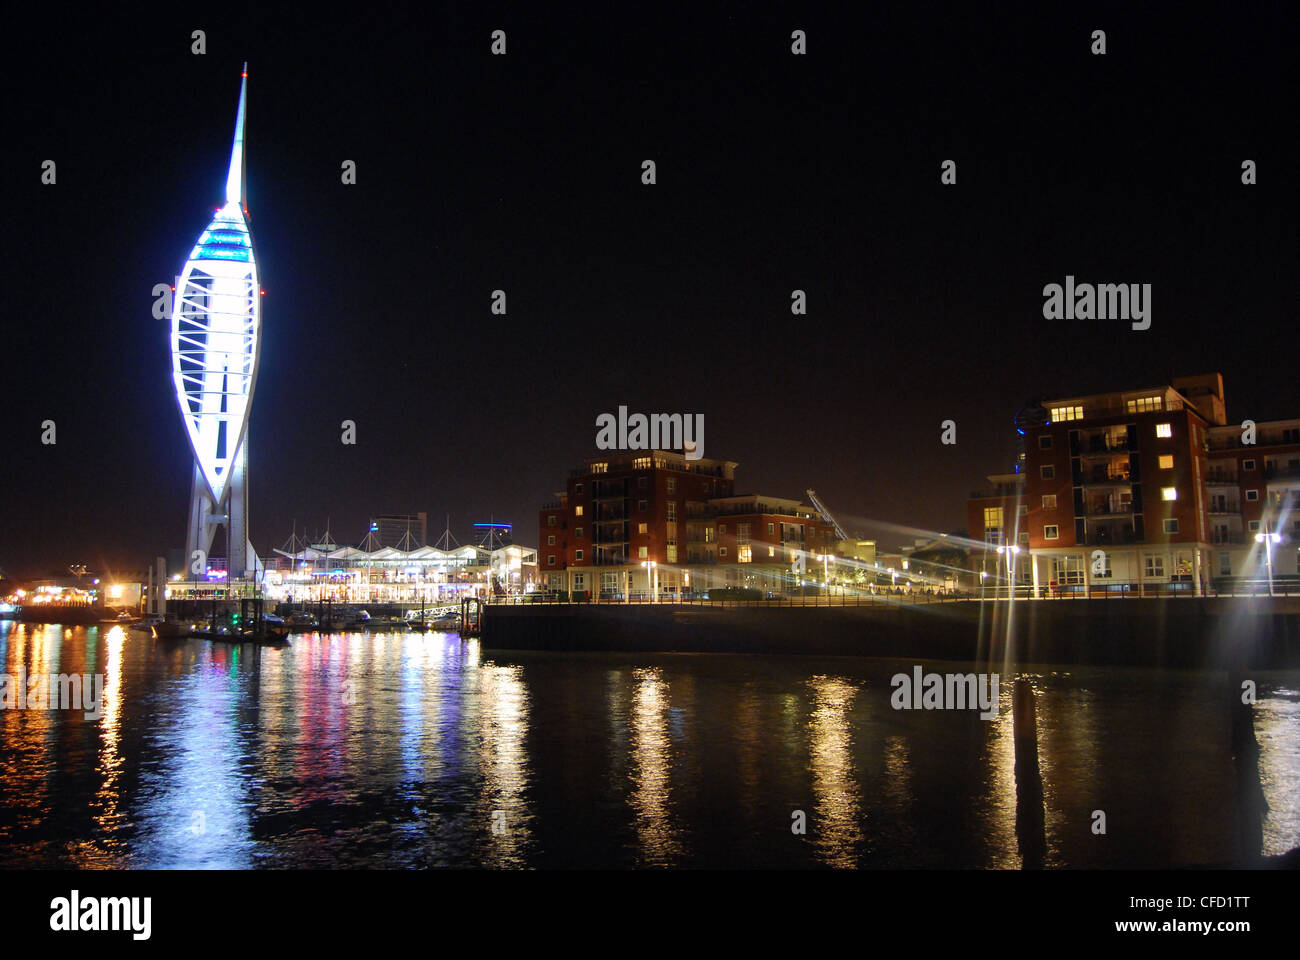 Gunwhalf Quays and Spinnaker Tower in Portsmouth at night. Stock Photo